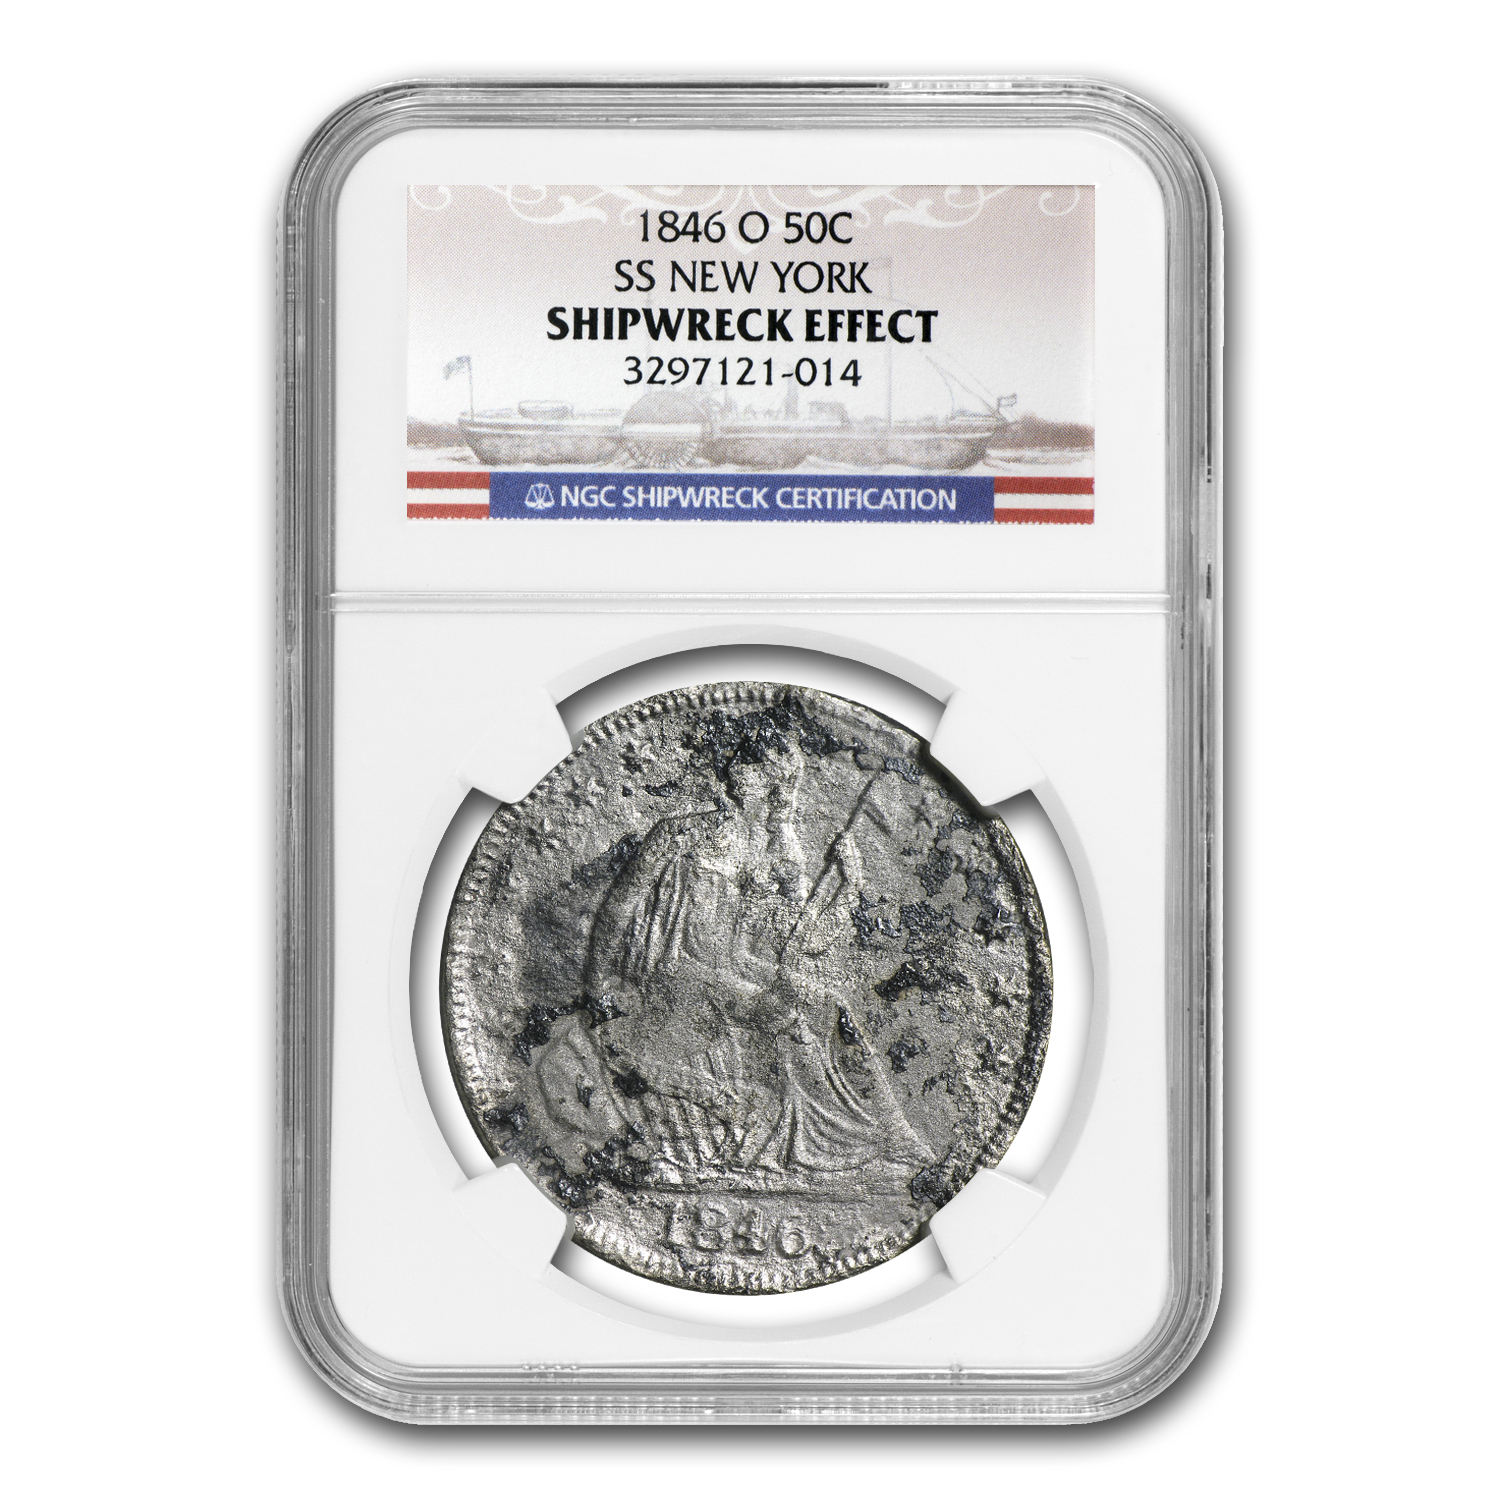 1846-O Seated Half Dollar - SS New York - NGC - Shipwreck Effect